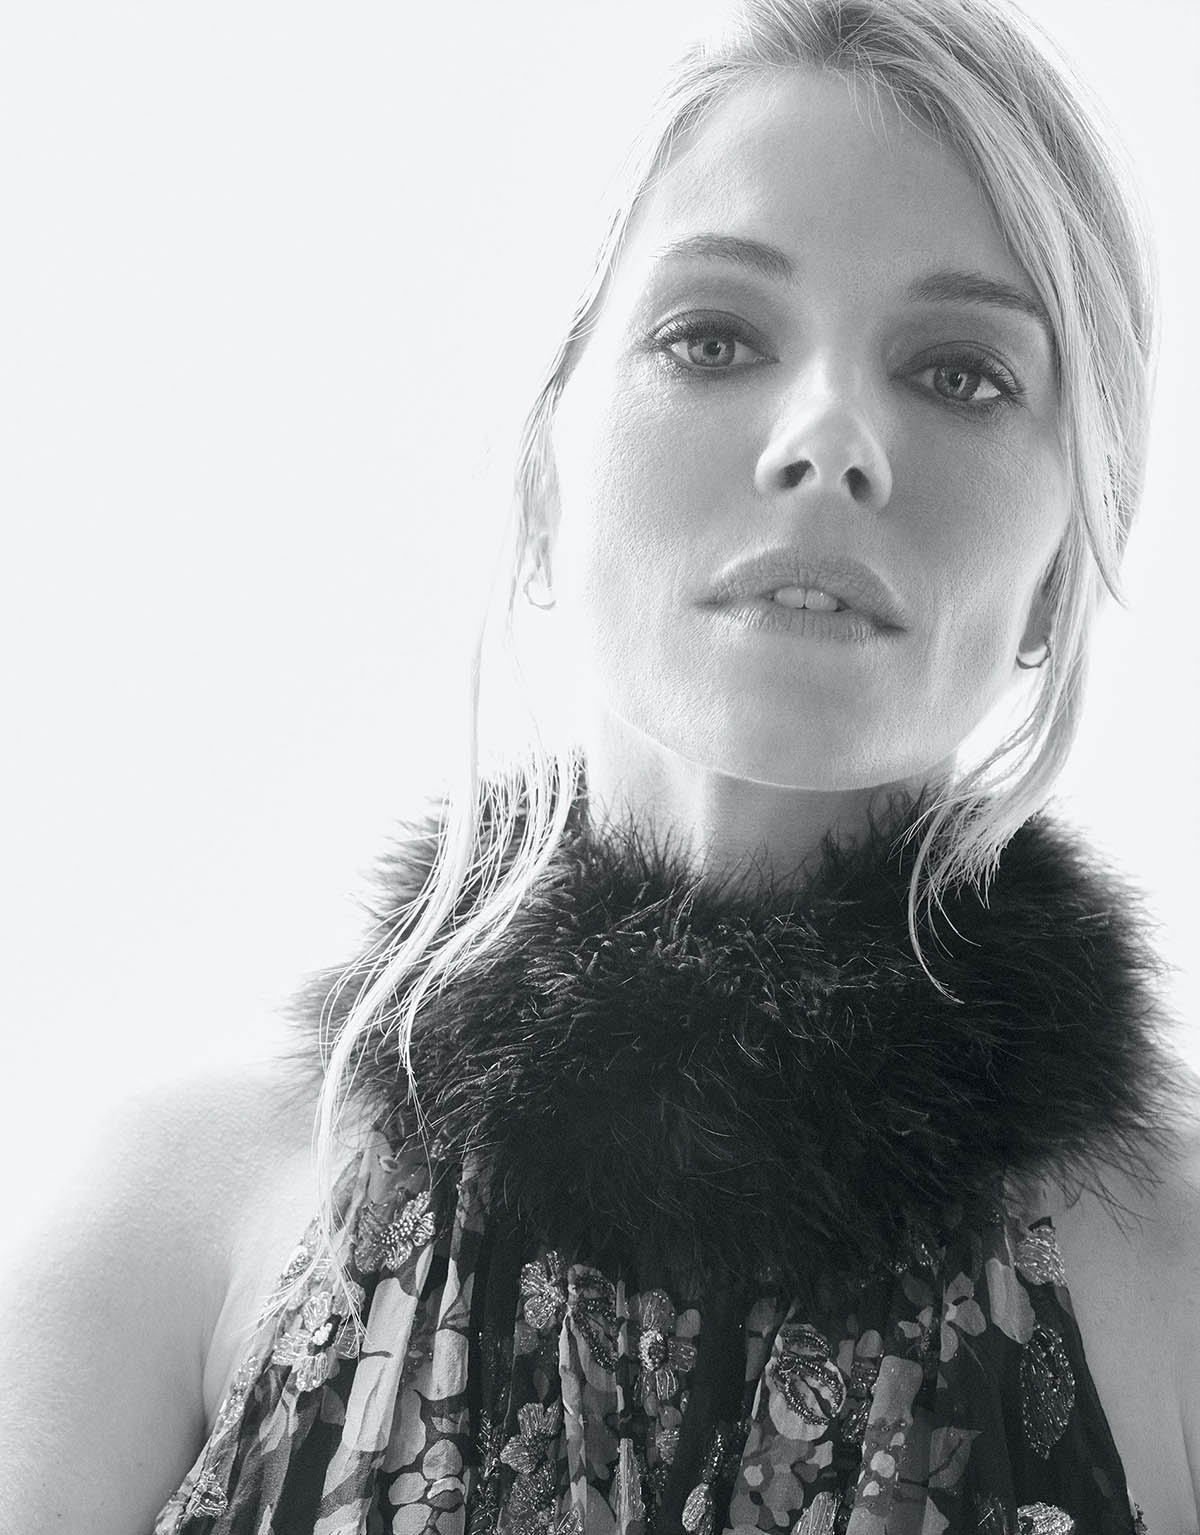 Sienna Miller covers L'Officiel USA Spring 2021 by Tom Munro